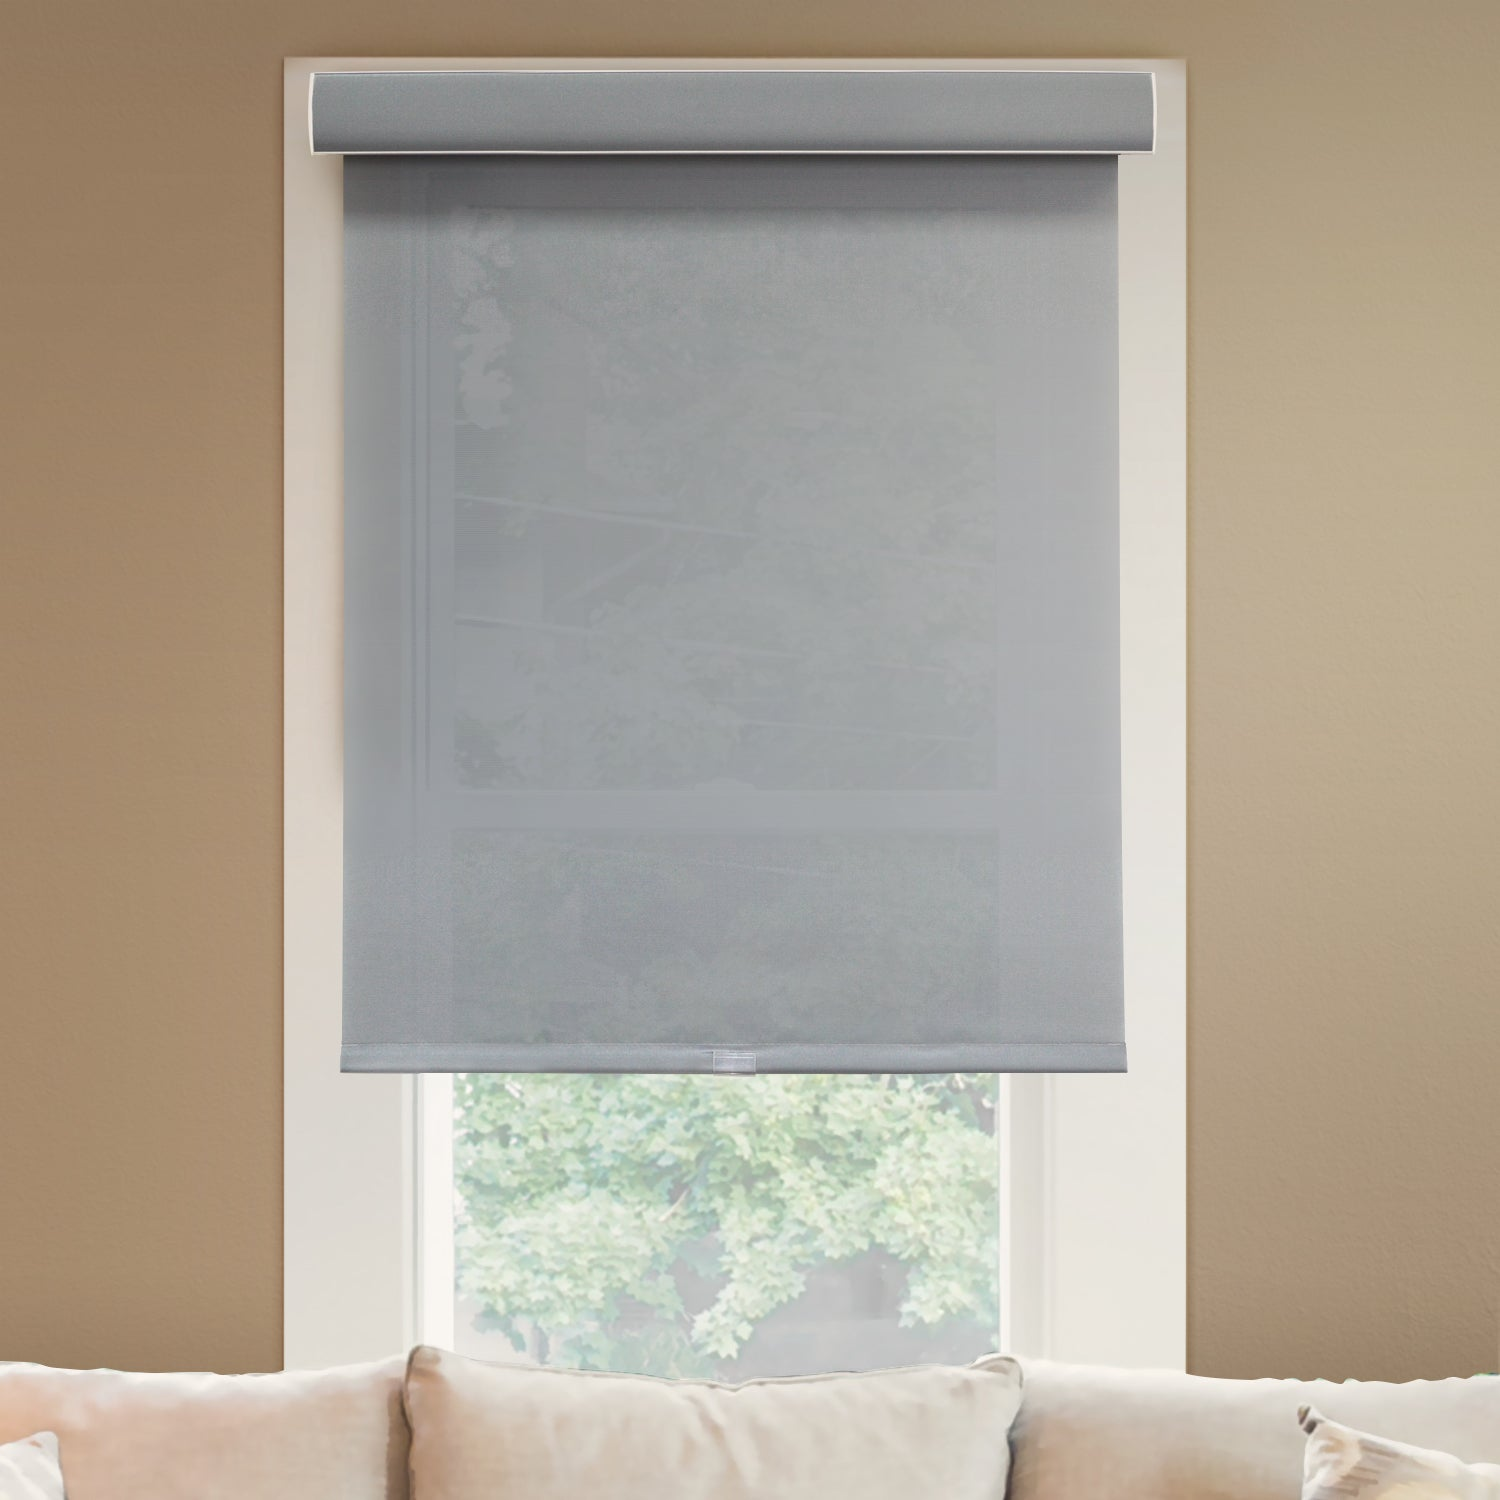 window google right blind pin solution wood installations blinds search is treatments cordless